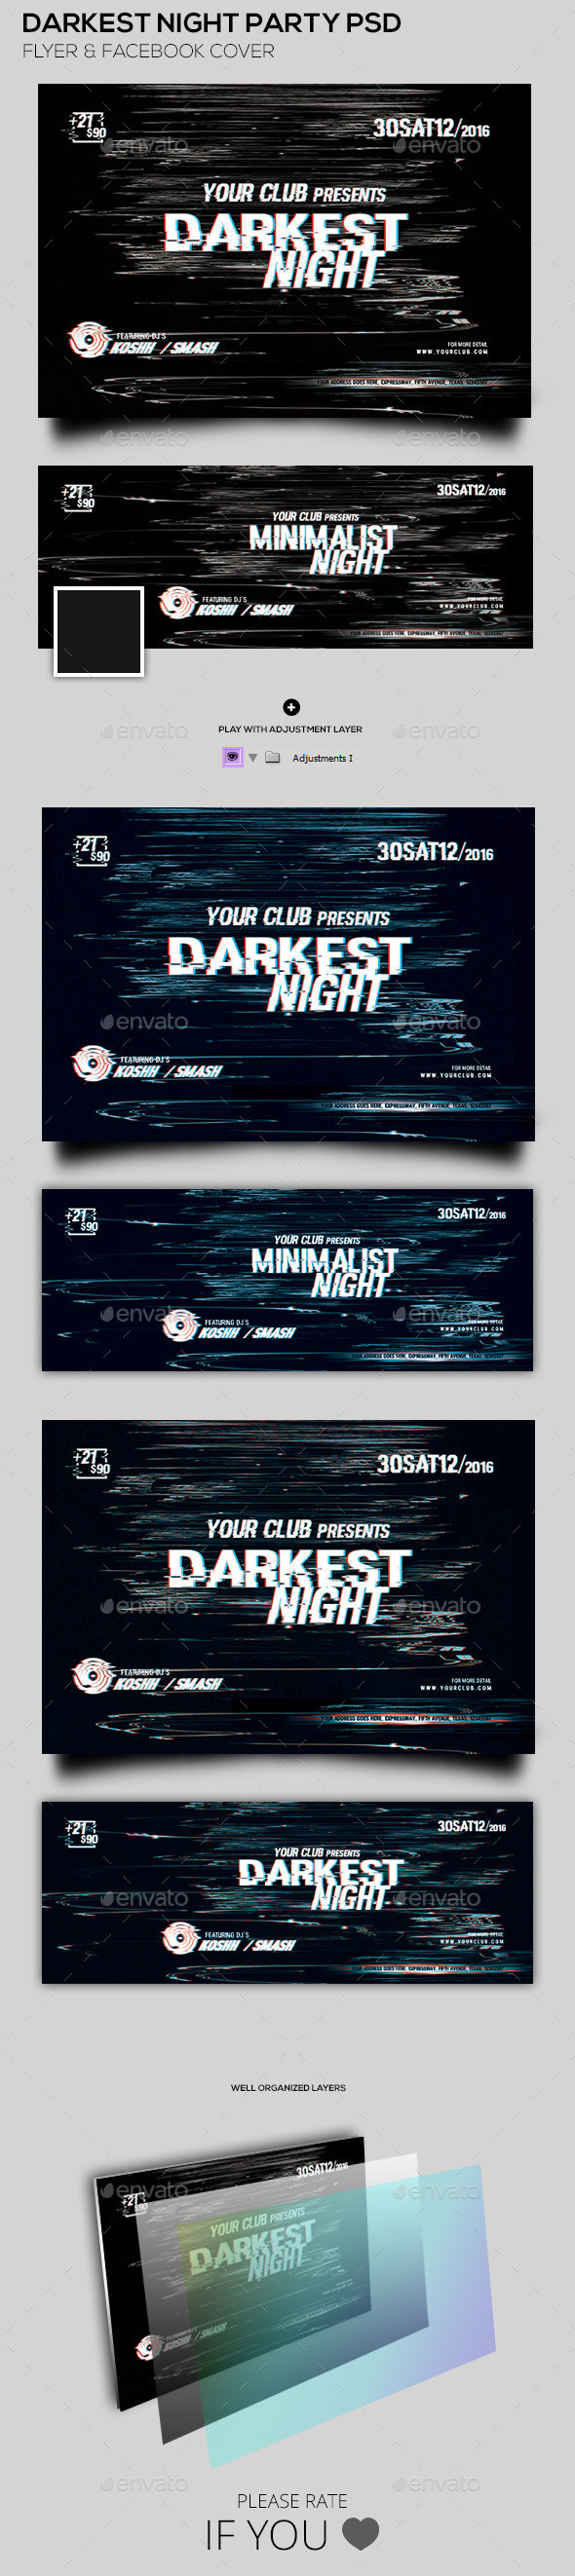 Darkest Night Party Flyer & Facebook Cover - Clubs & Parties Events